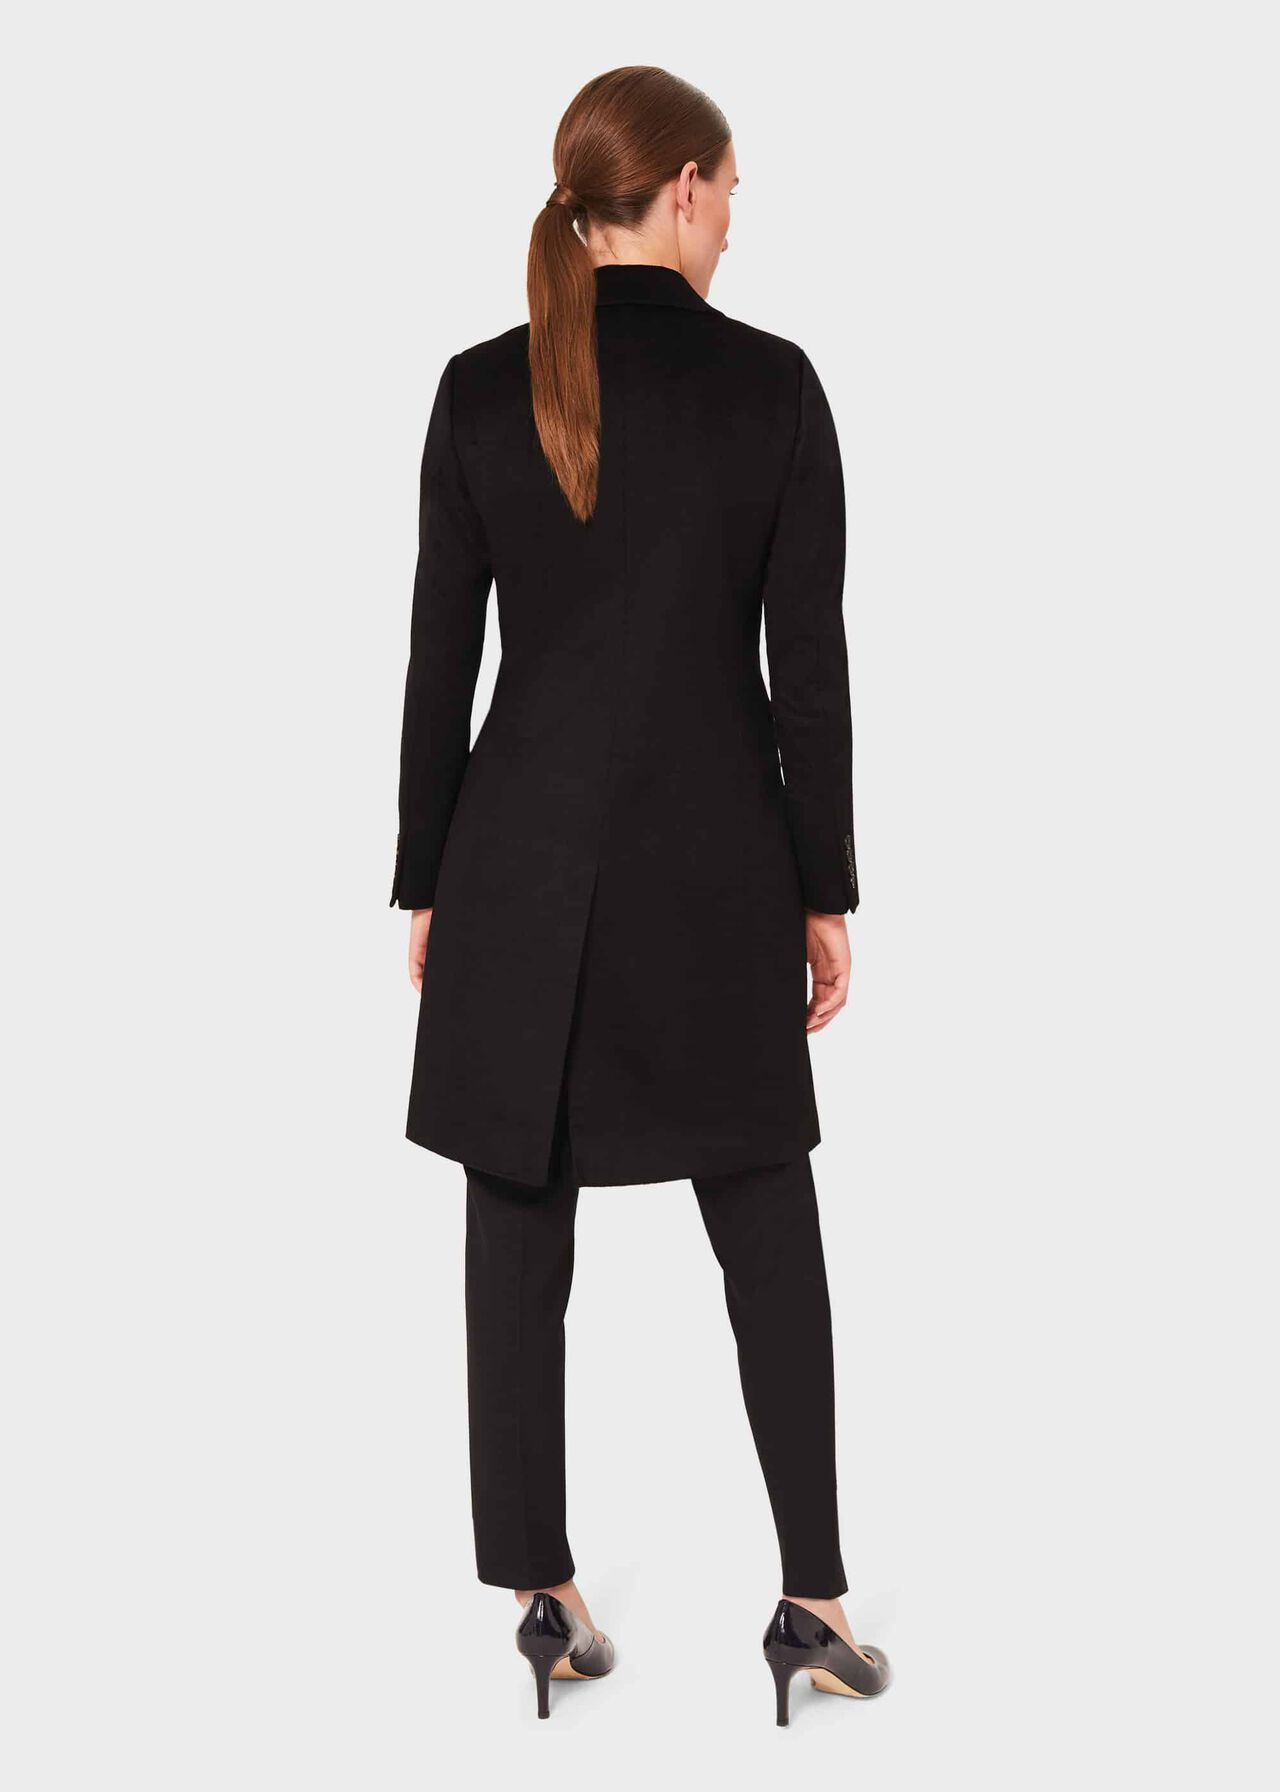 Petite Tilda Wool Collar Coat, Black, hi-res